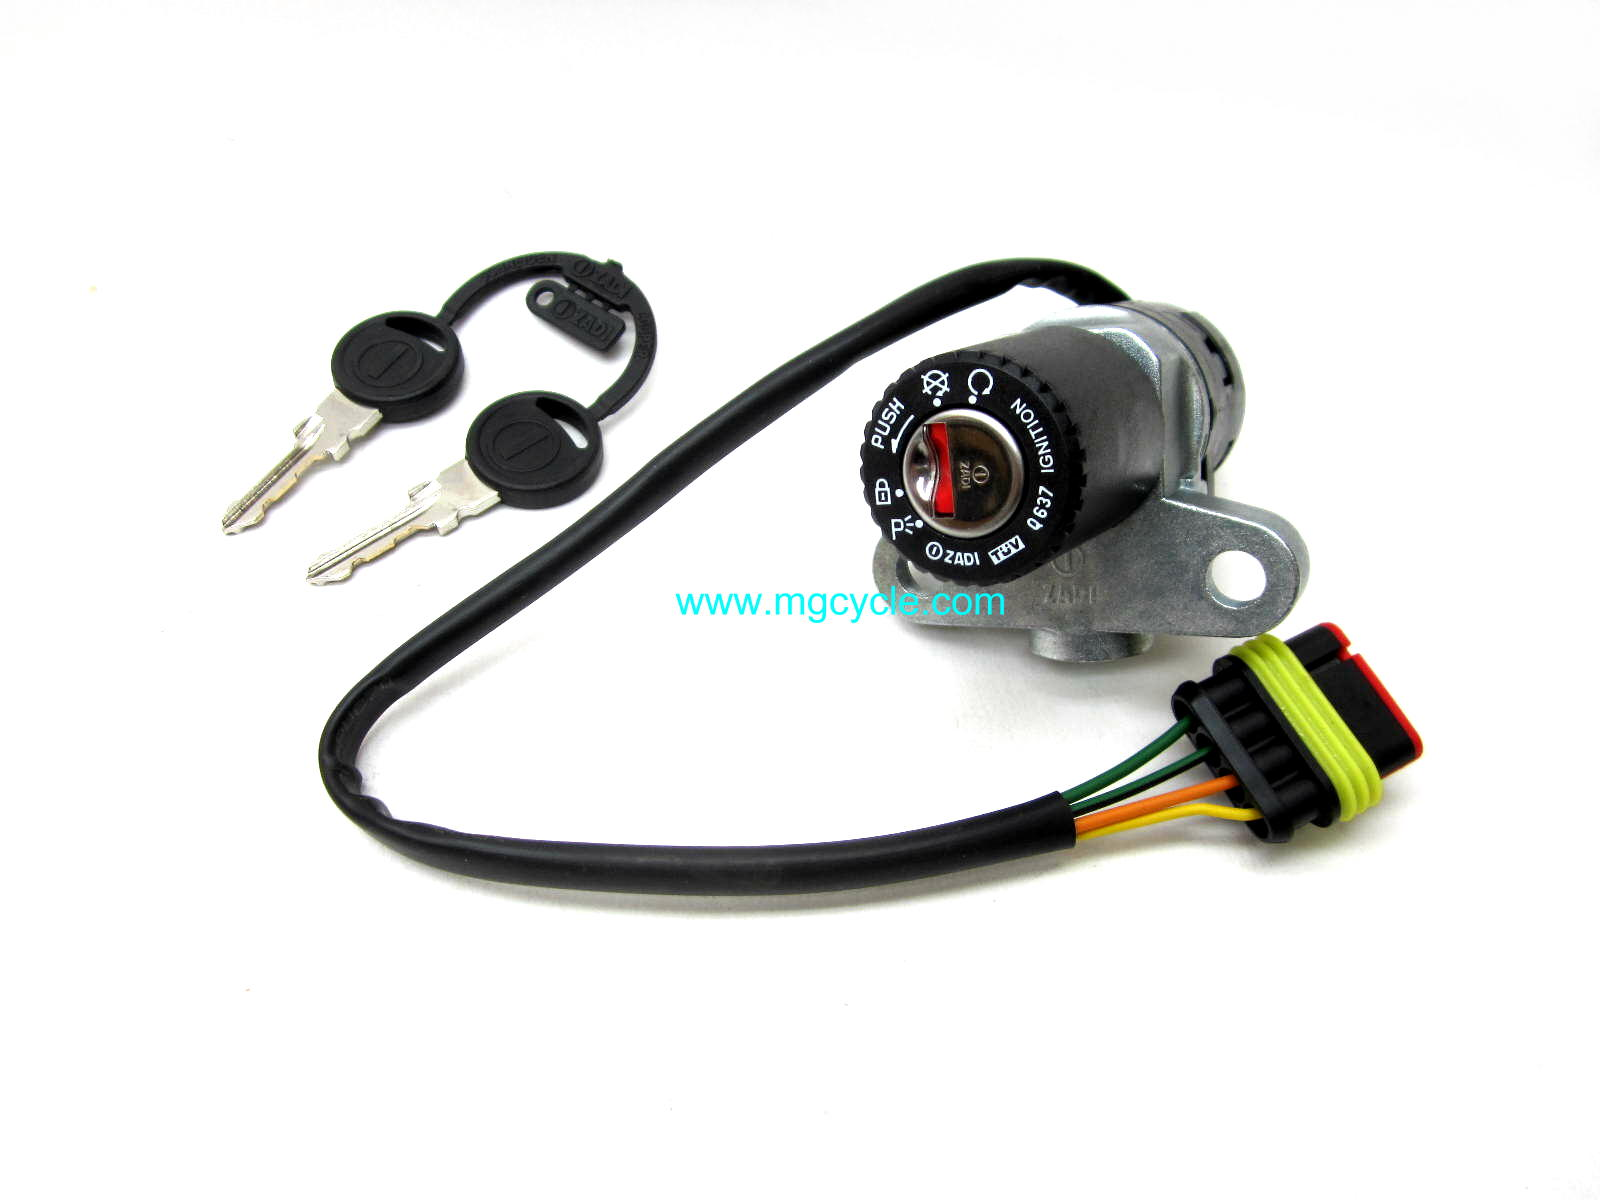 ignition swich, steering lock, with keys, many models 1996-2013